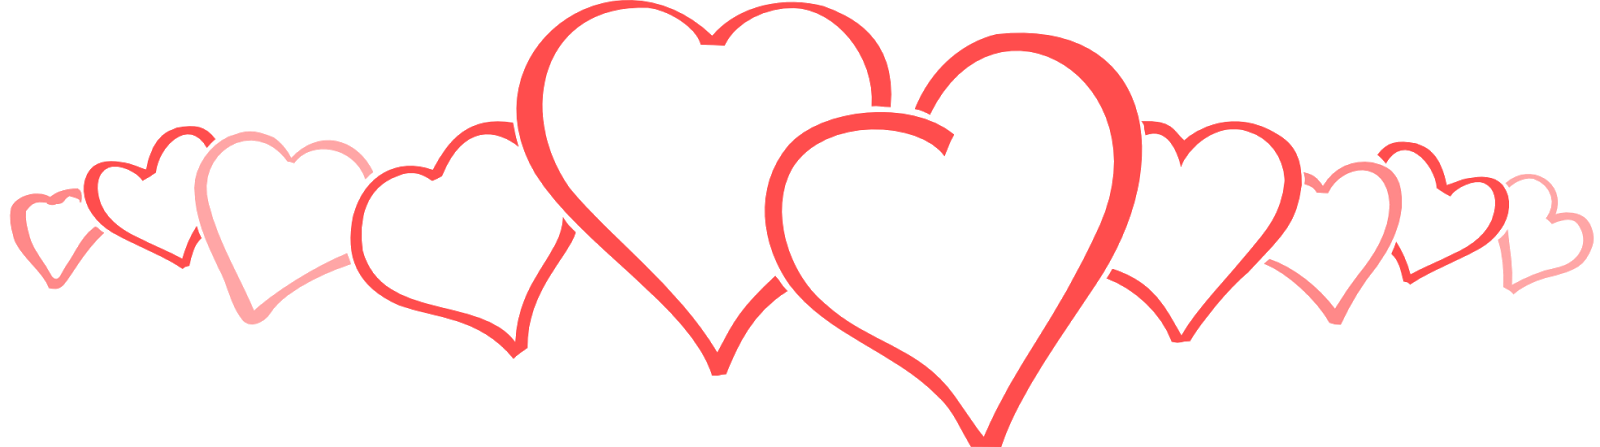 Pillow thought round up. Valentine hearts png